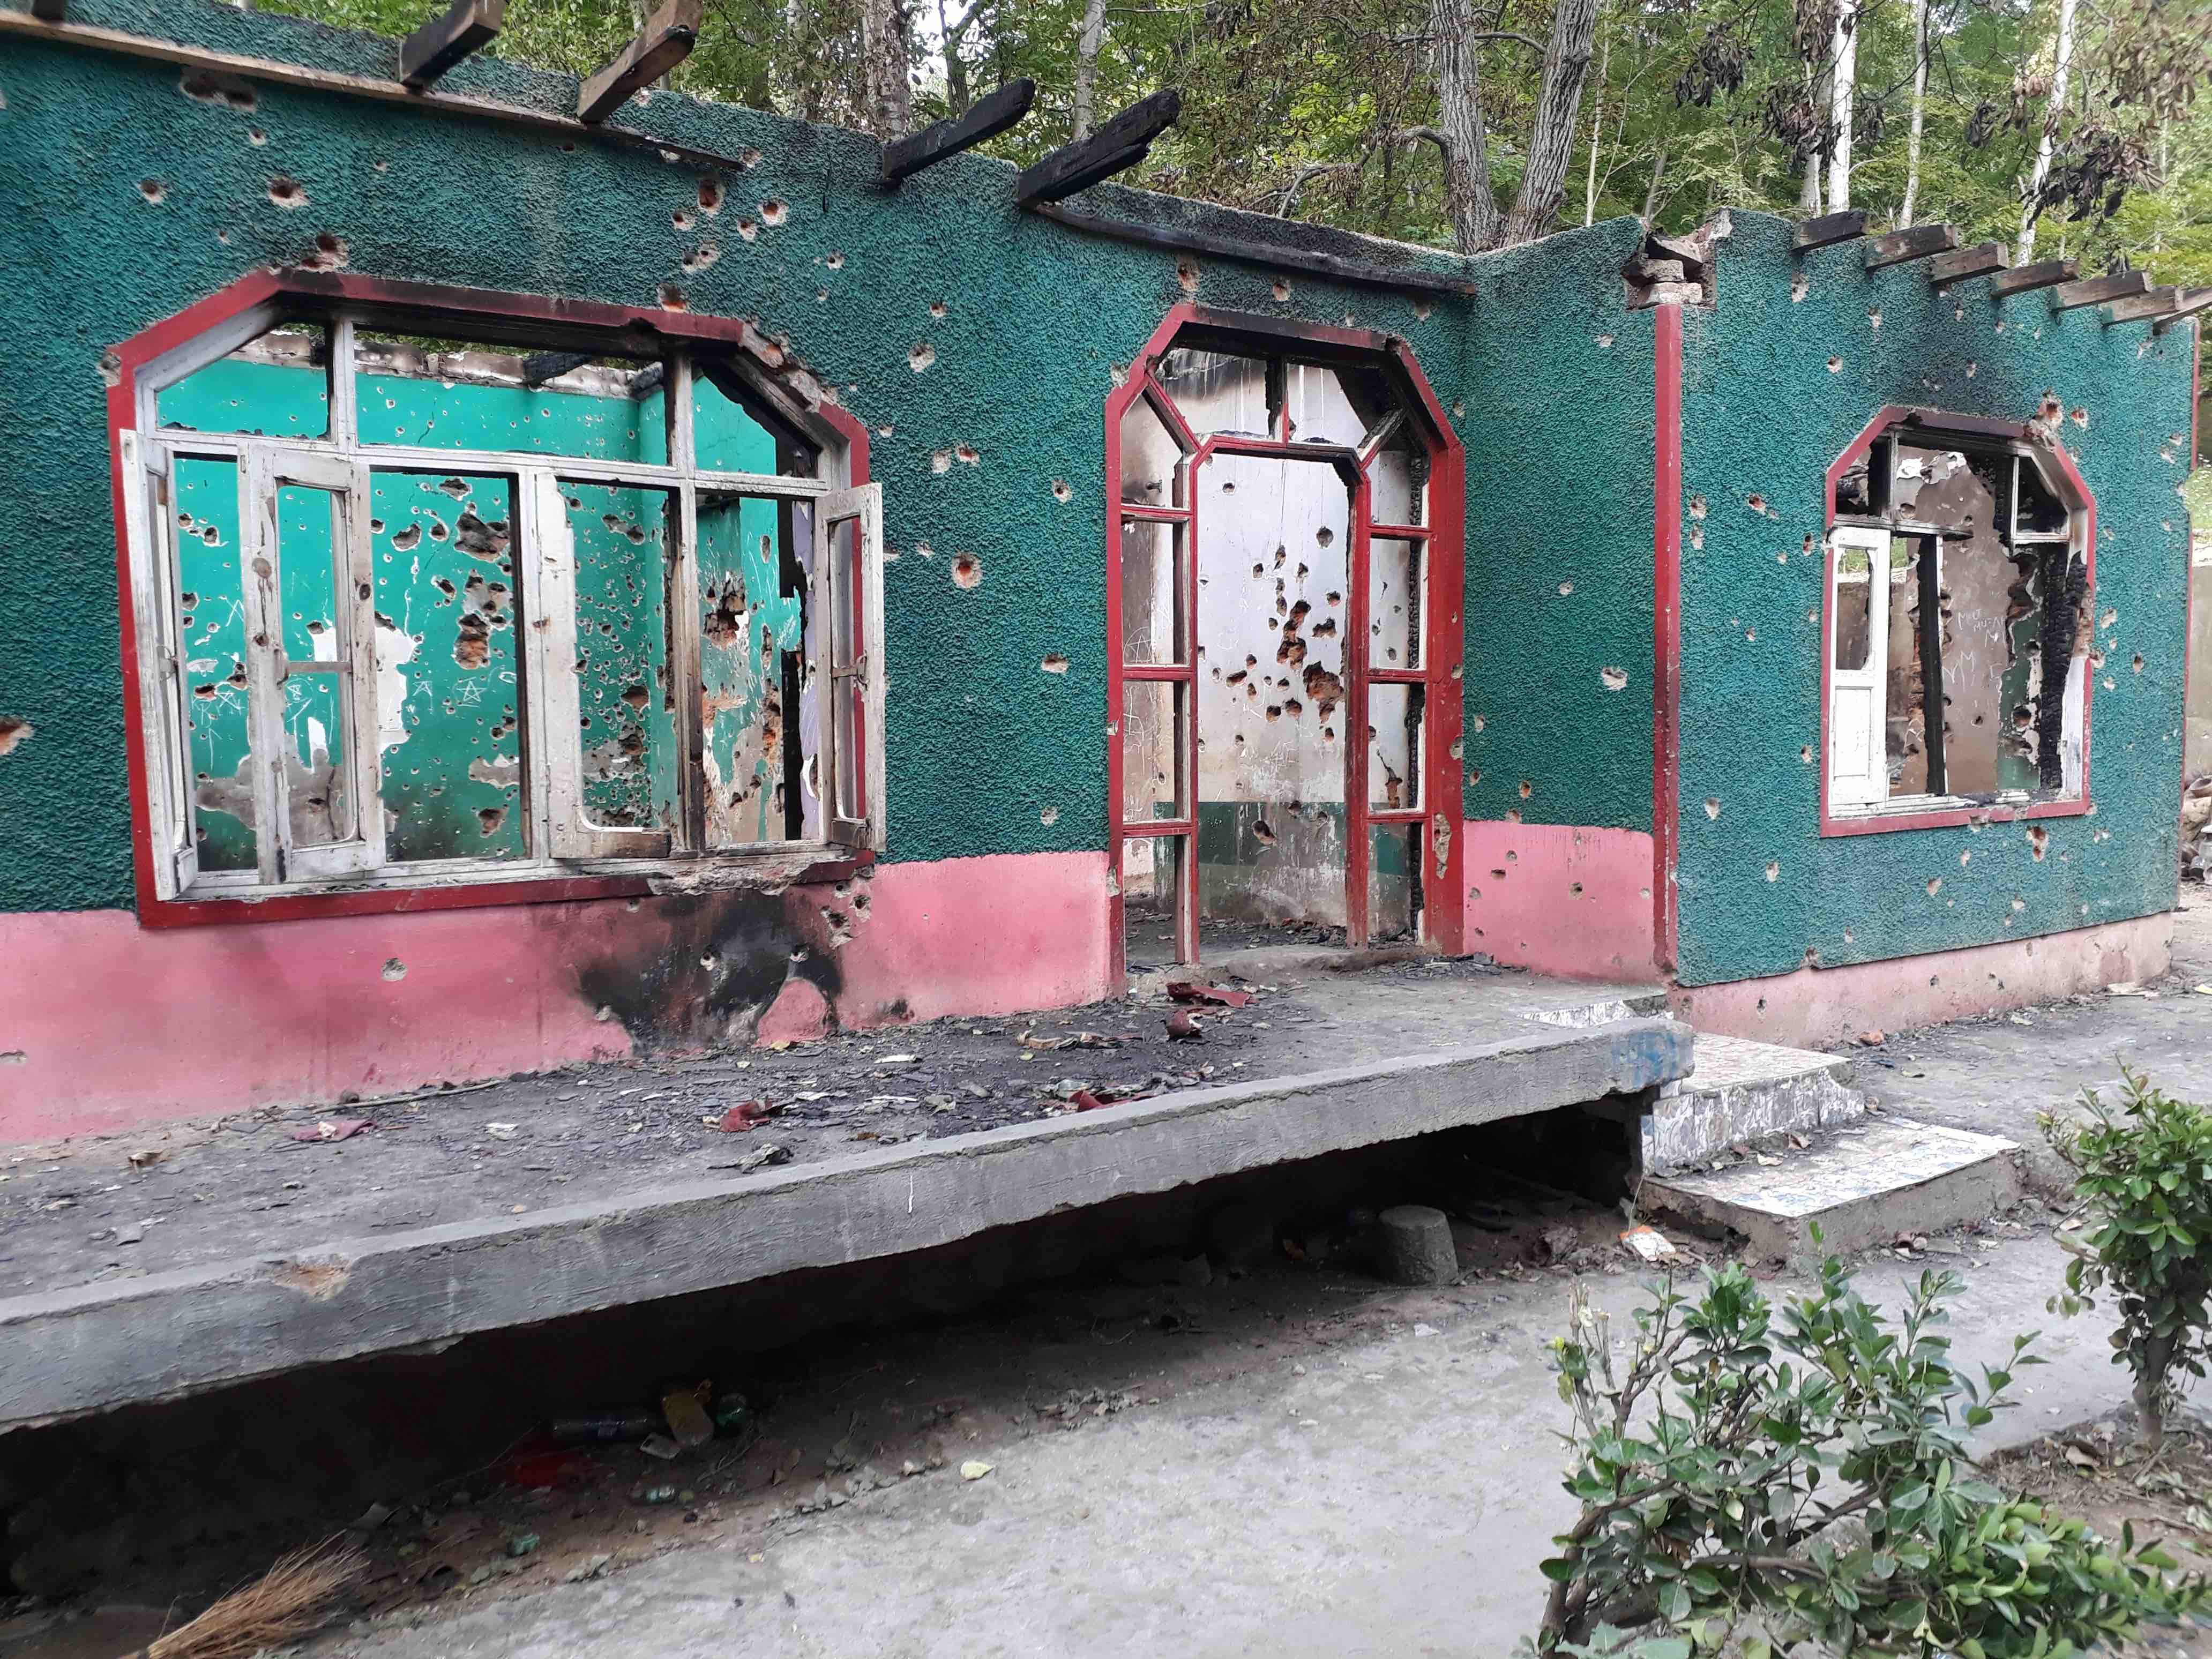 The ashen walls of the house in Redbugh village of Budgam district in Jammu and Kashmir where the militants were killed. Credit: Mudasir Ahmad